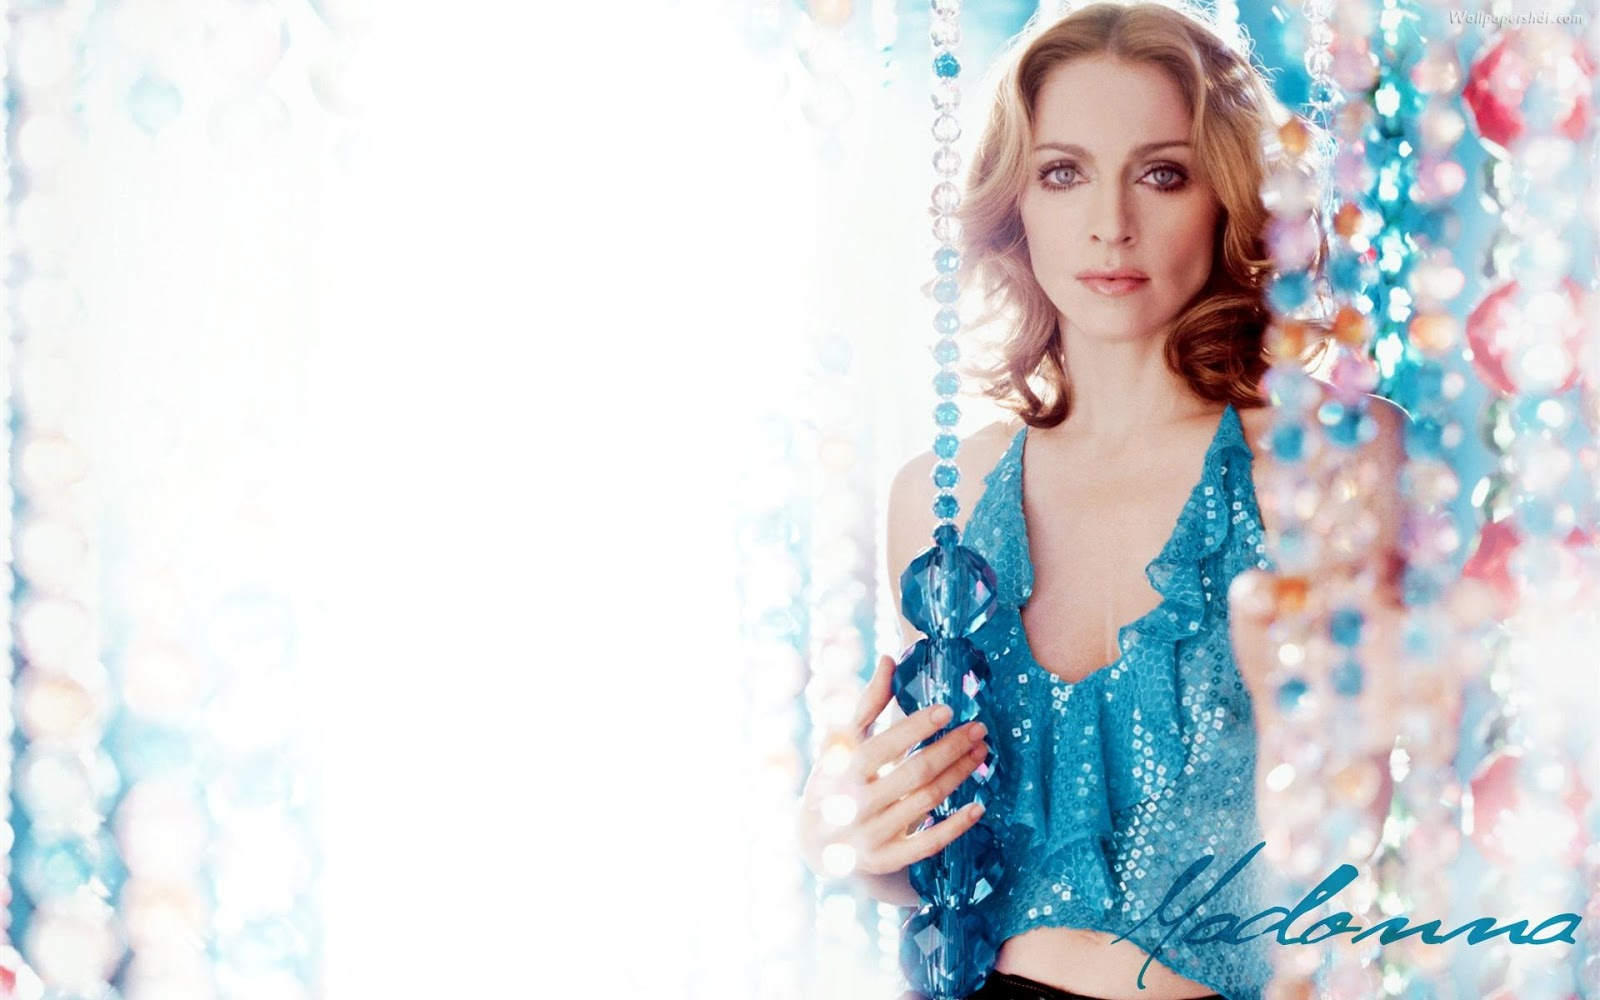 madonna hd wallpapers